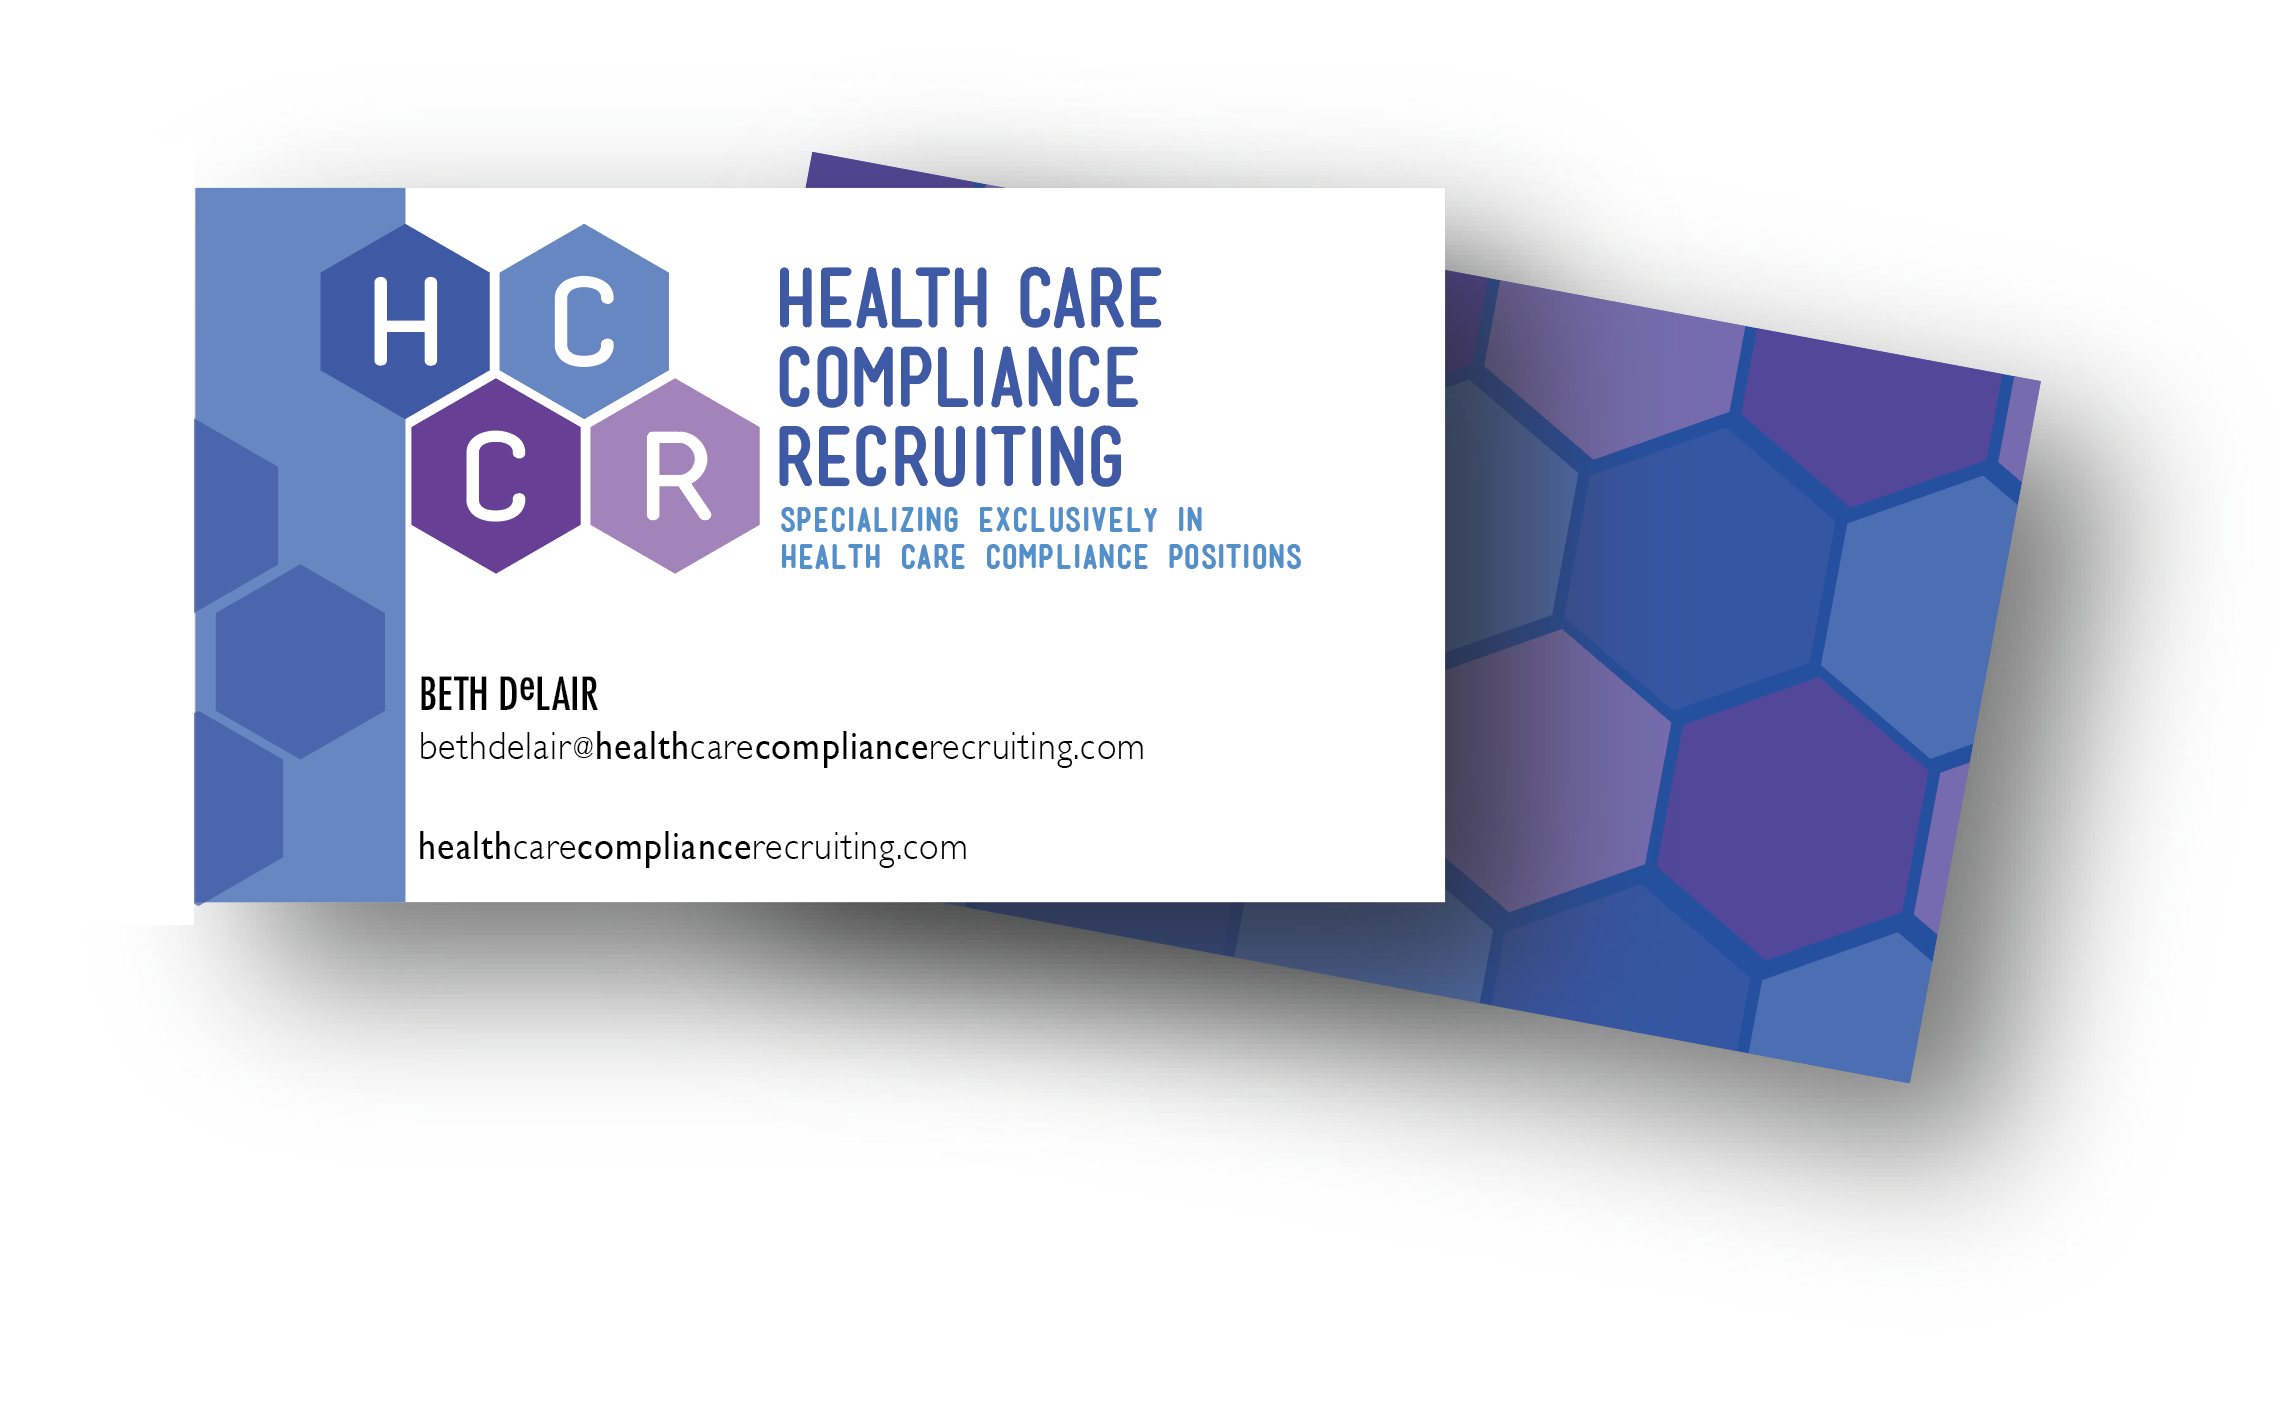 Health Care Compliance Recruiting